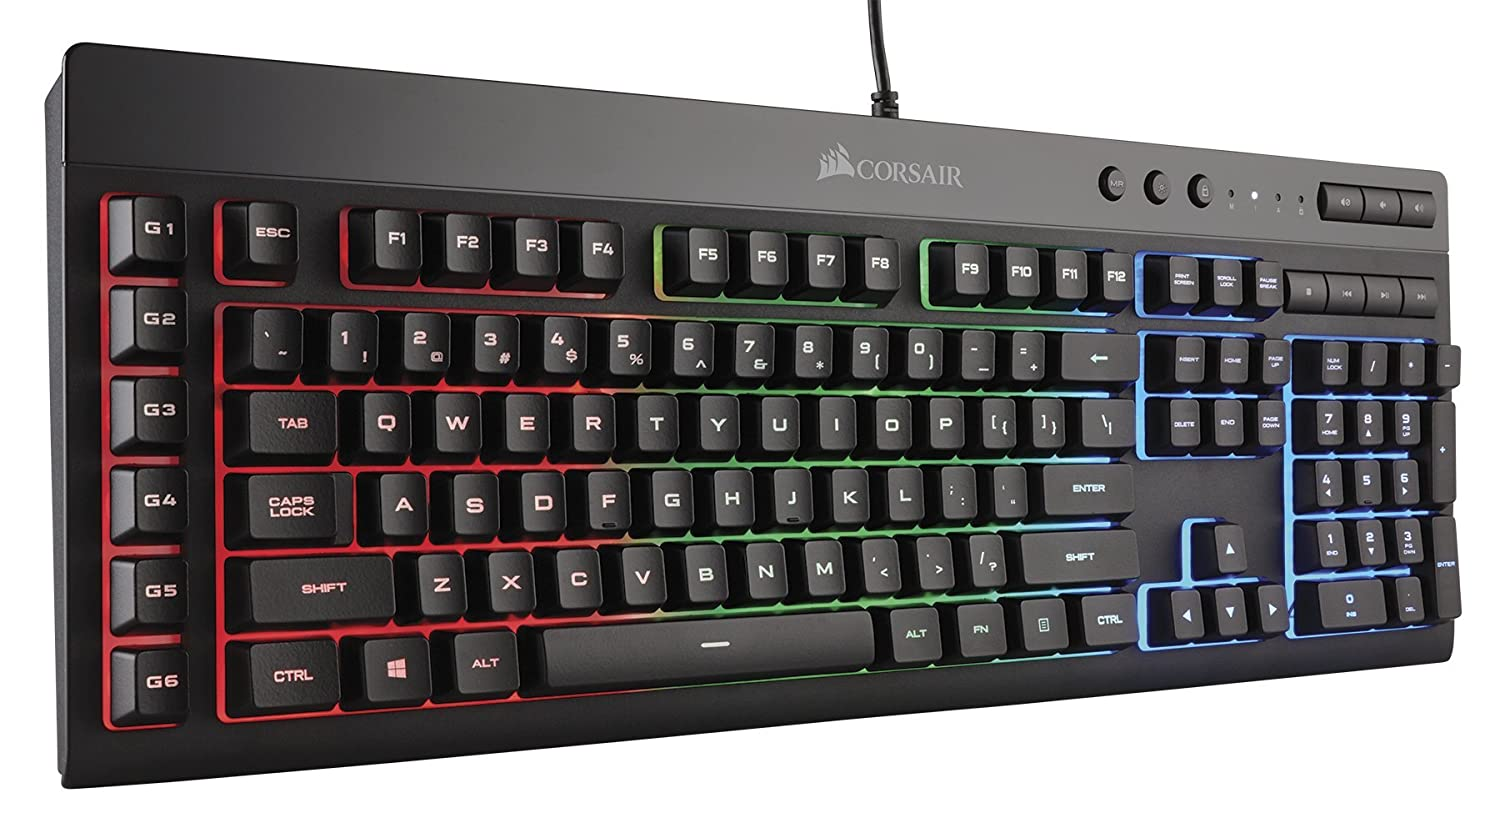 CORSAIR K55 RGB Gaming Keyboard - Quiet & Satisfying LED Backlit Keys - Media Controls - Wrist Rest Included � Onboard Macro Recording